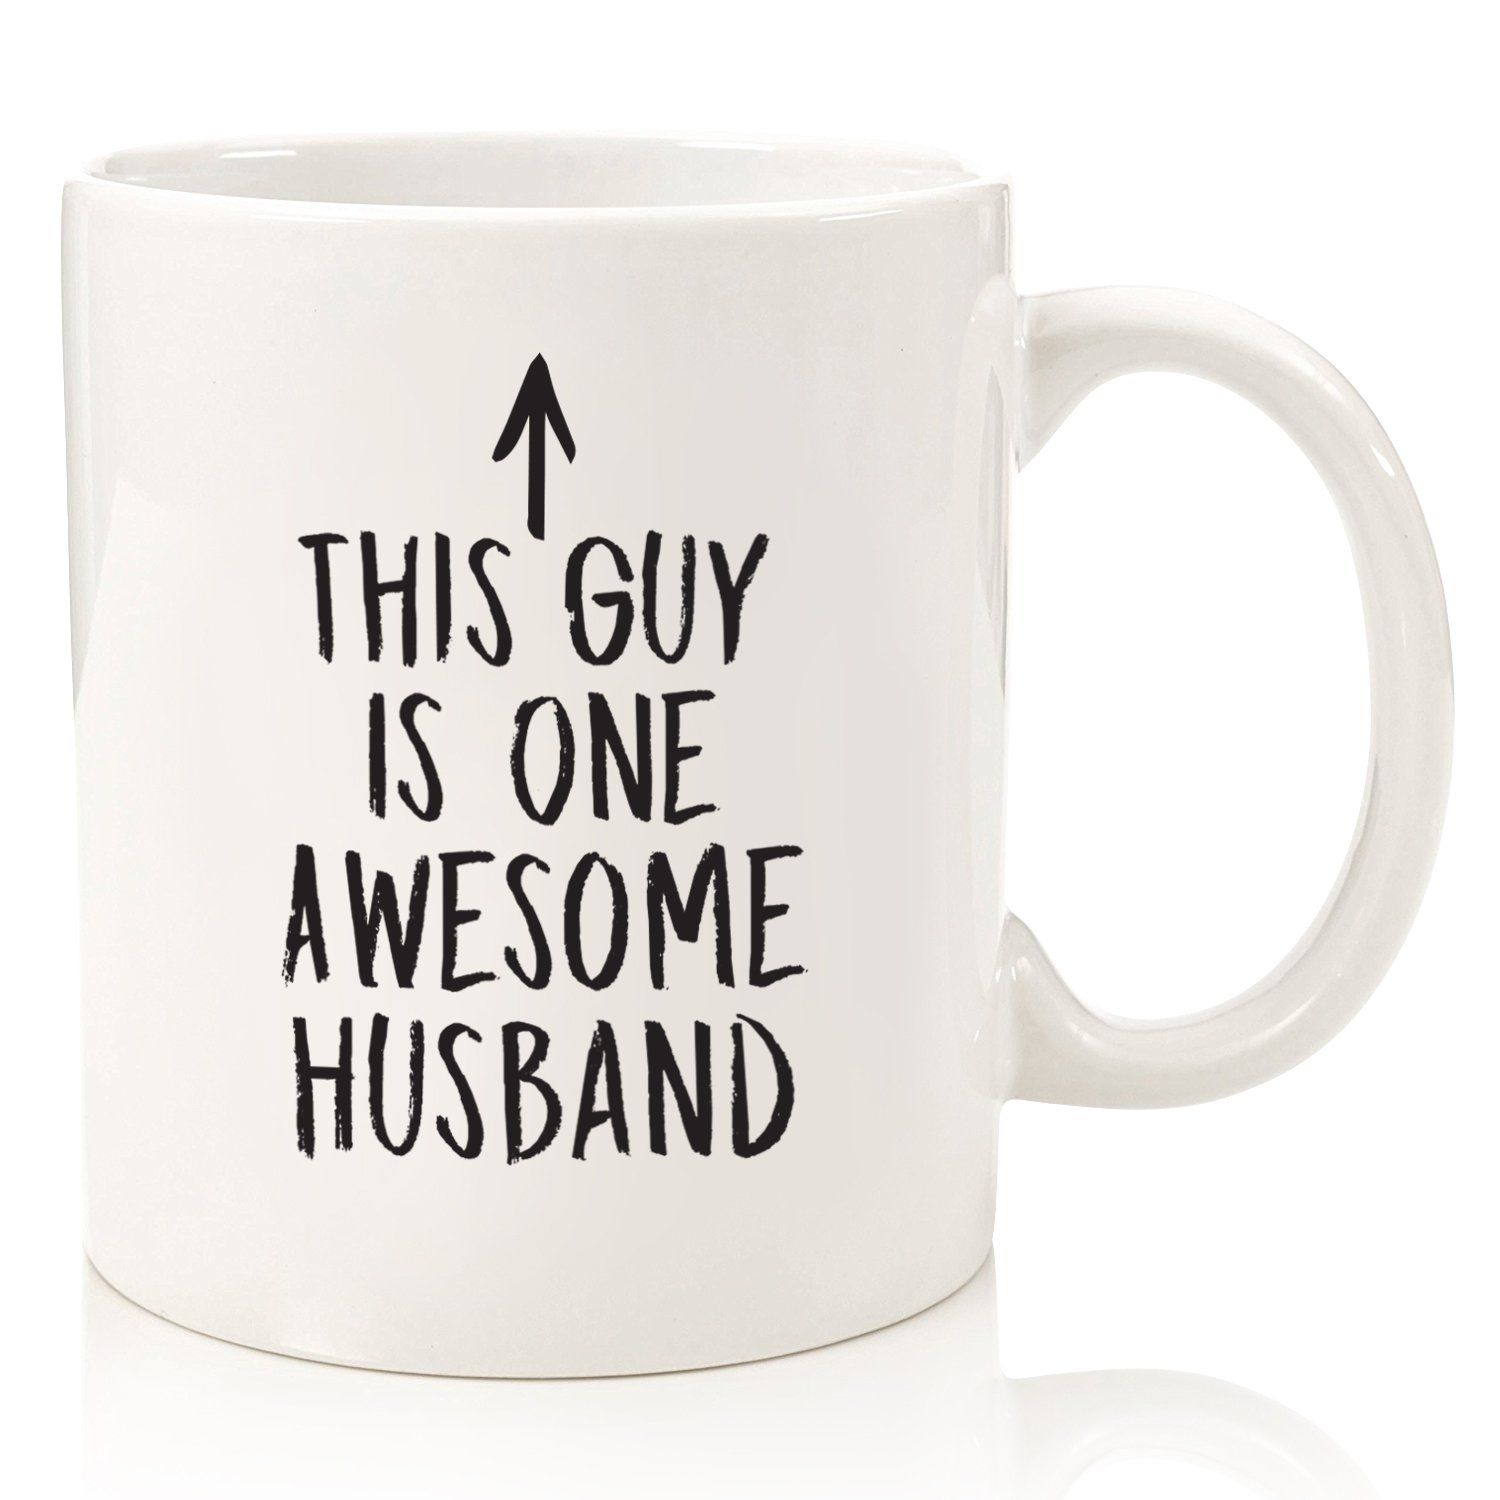 b5462d2fa07 Husband Gifts - Funny Coffee Mug: One Awesome Husband - Best Valentines Day  or Anniversary Gifts For Men, Him - Unique Birthday Idea From Wife - Fun ...